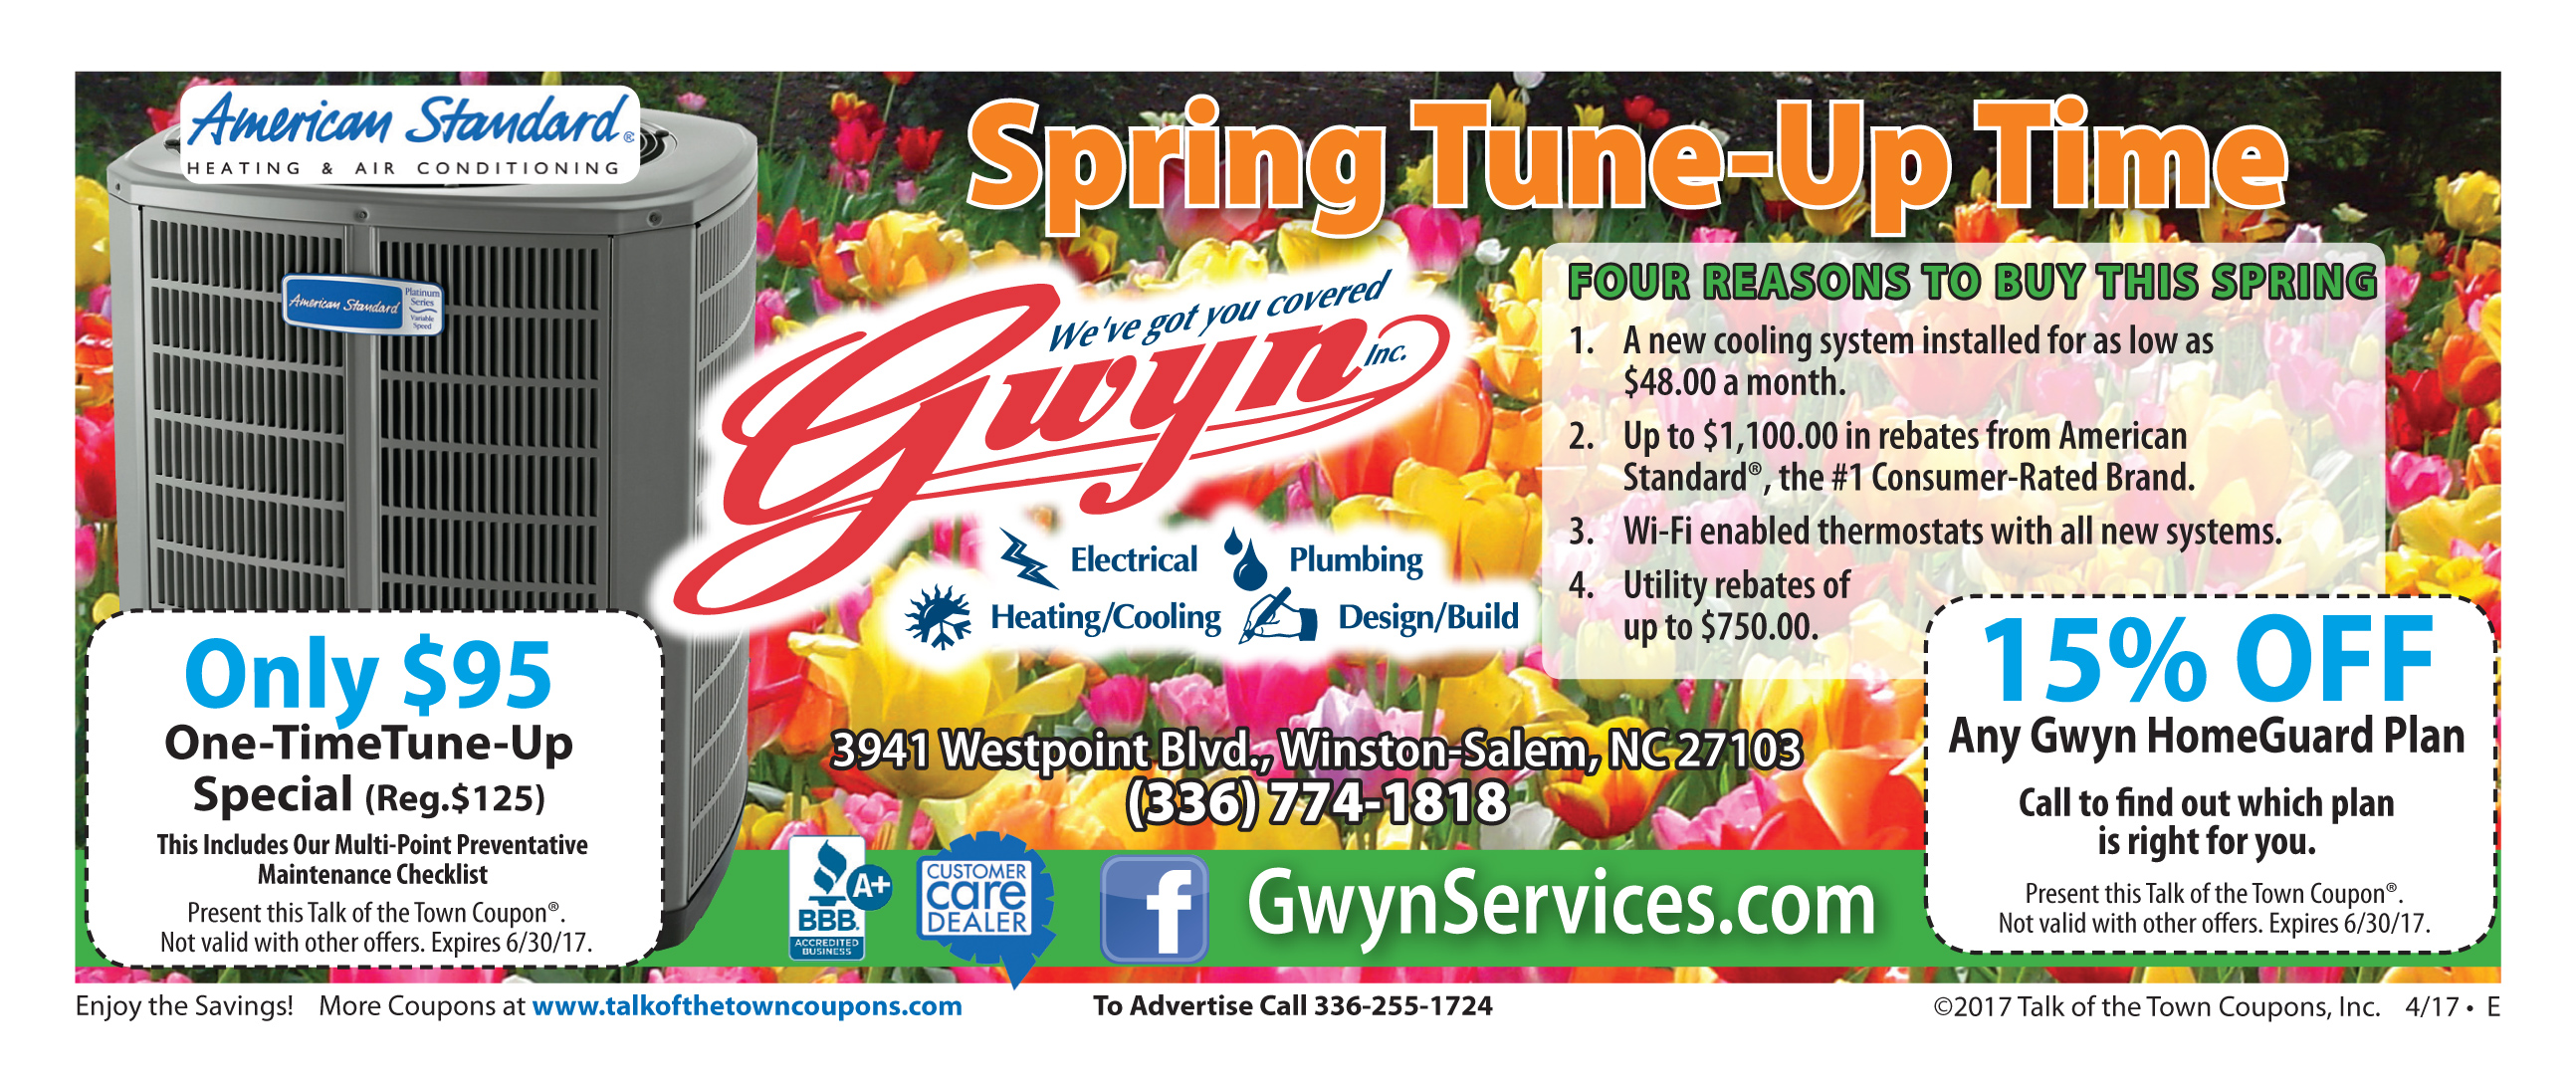 Gwynn Heating Air offer coupon booklet image